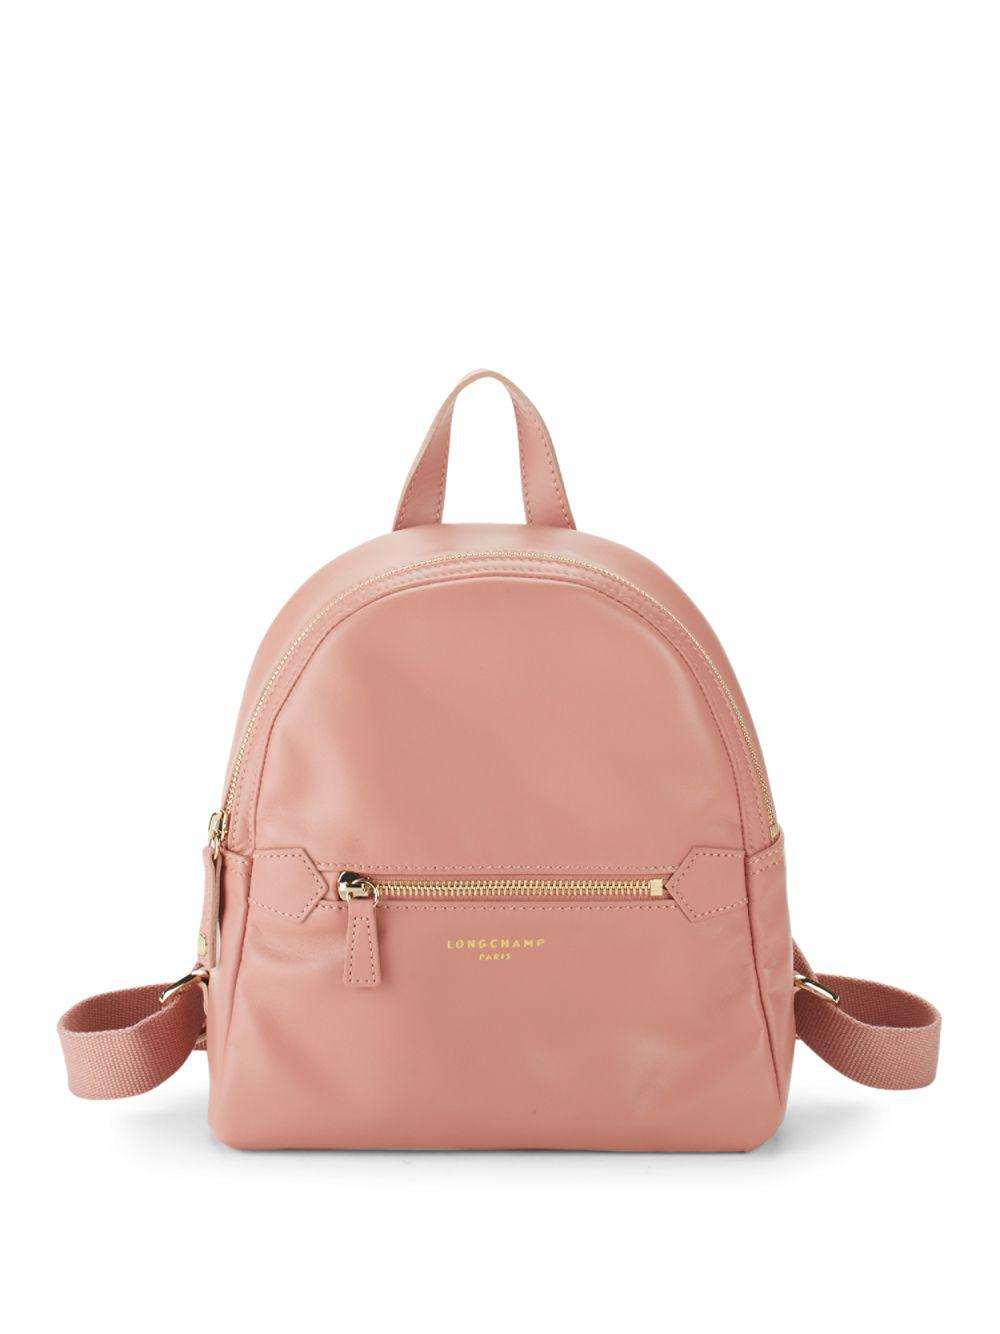 f43fbc693e99 Longchamp - Pink Leather Backpack - Lyst. View fullscreen